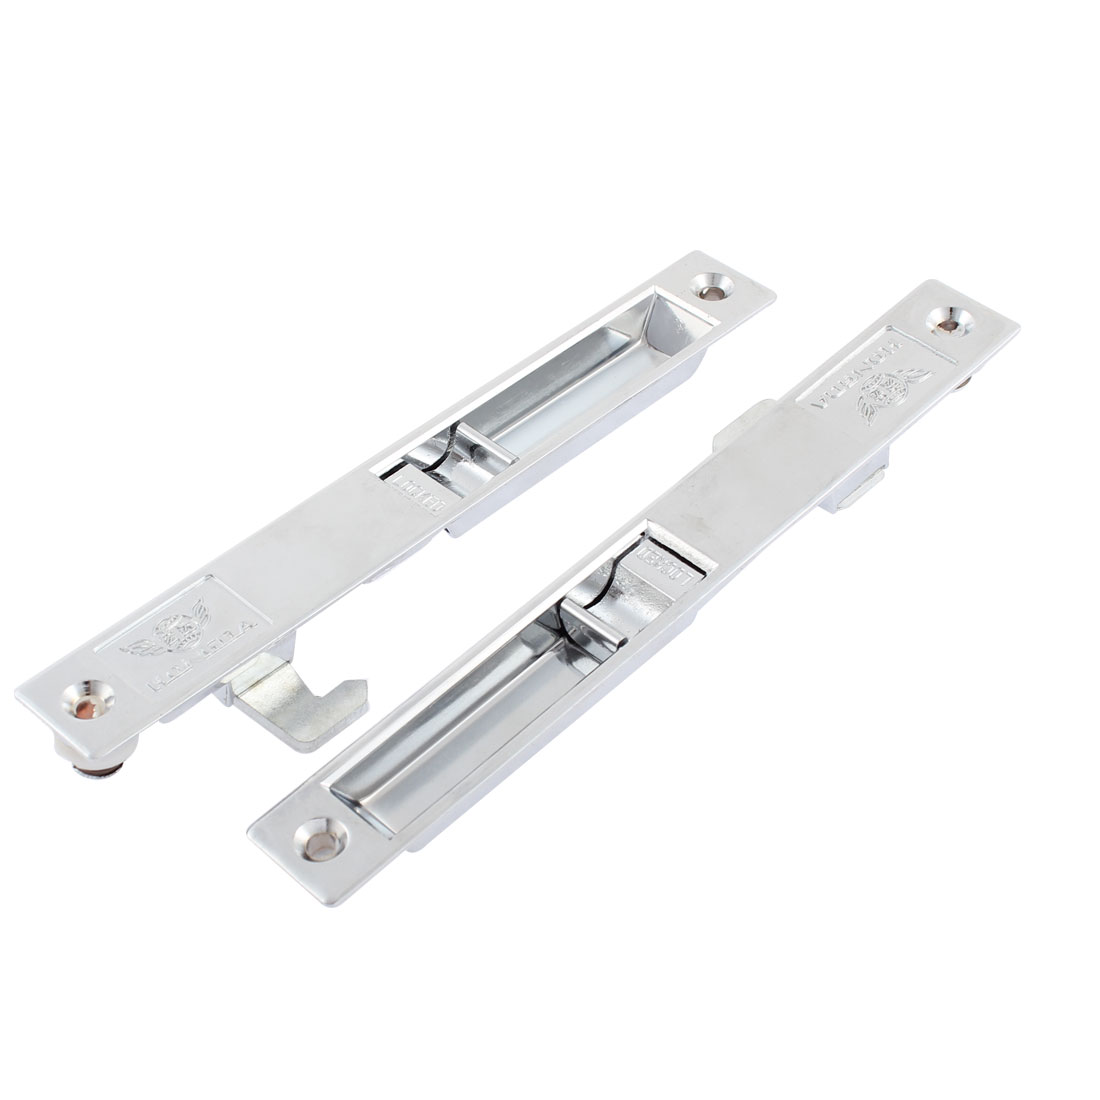 "2 Pcs Silver Tone Sliding Window Mounting Lock Latch 7.2"" Long"